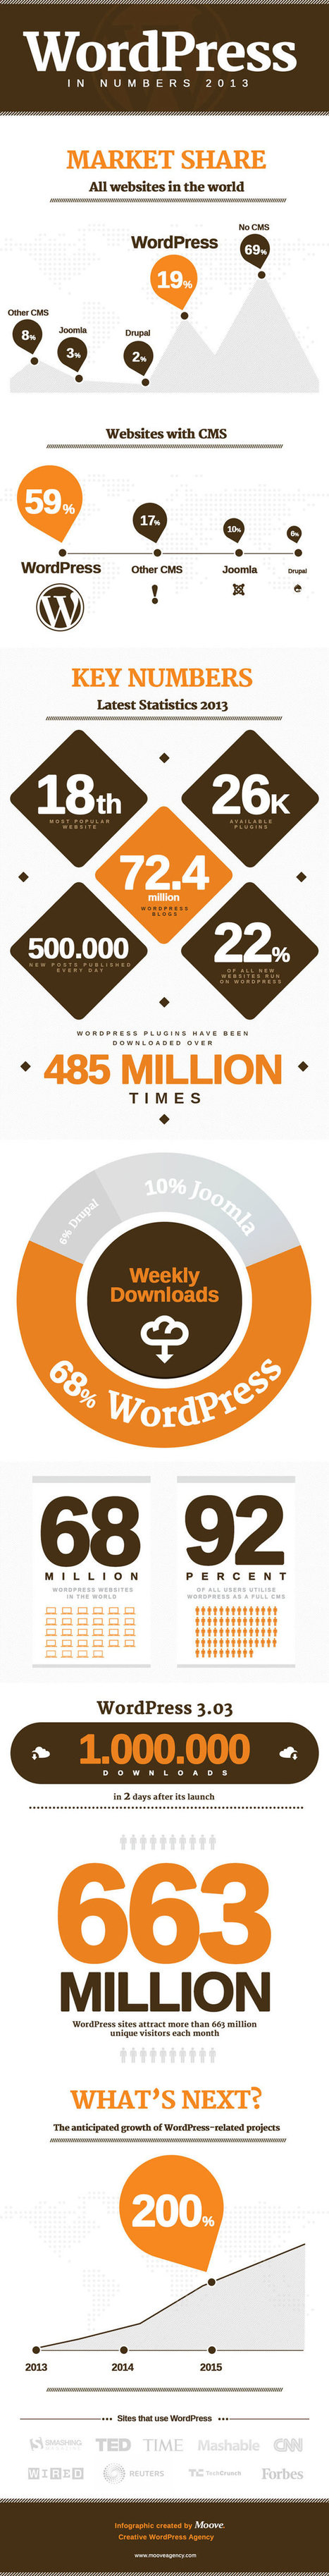 WordPress CMS in Numbers 2013 an infographic WordPress | eCommerce Website Templates | Scoop.it